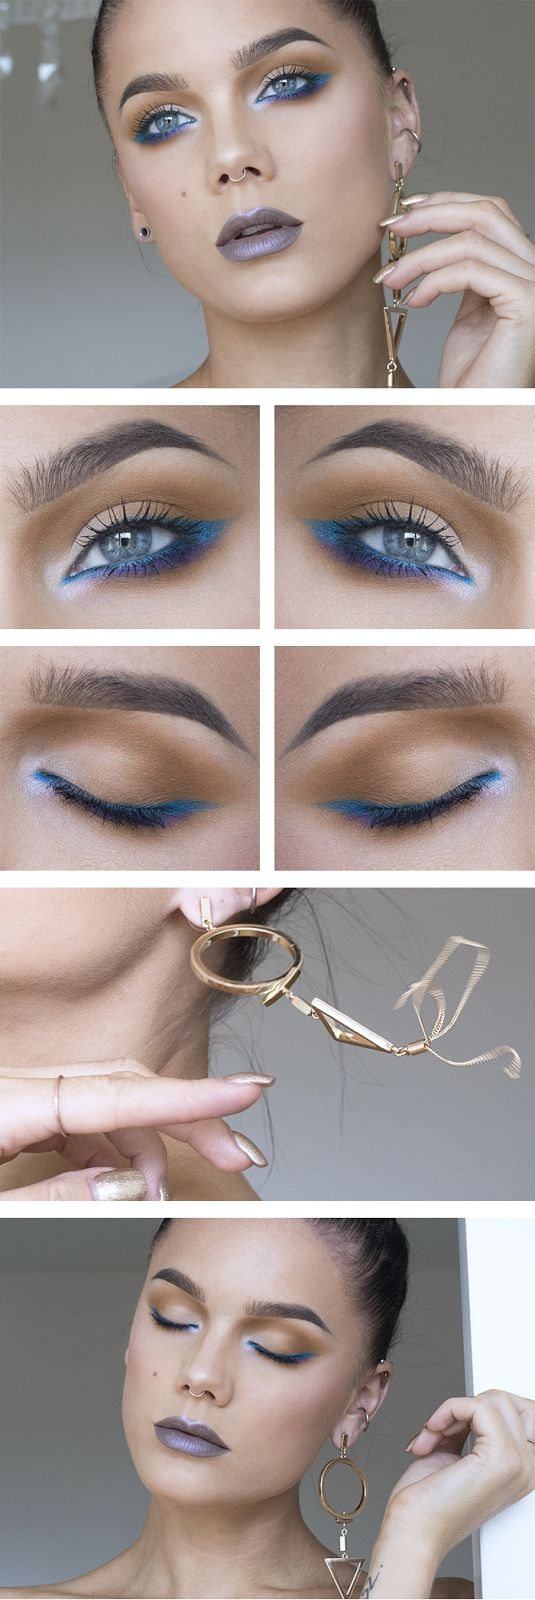 how to make makeup with a blue eyeliner